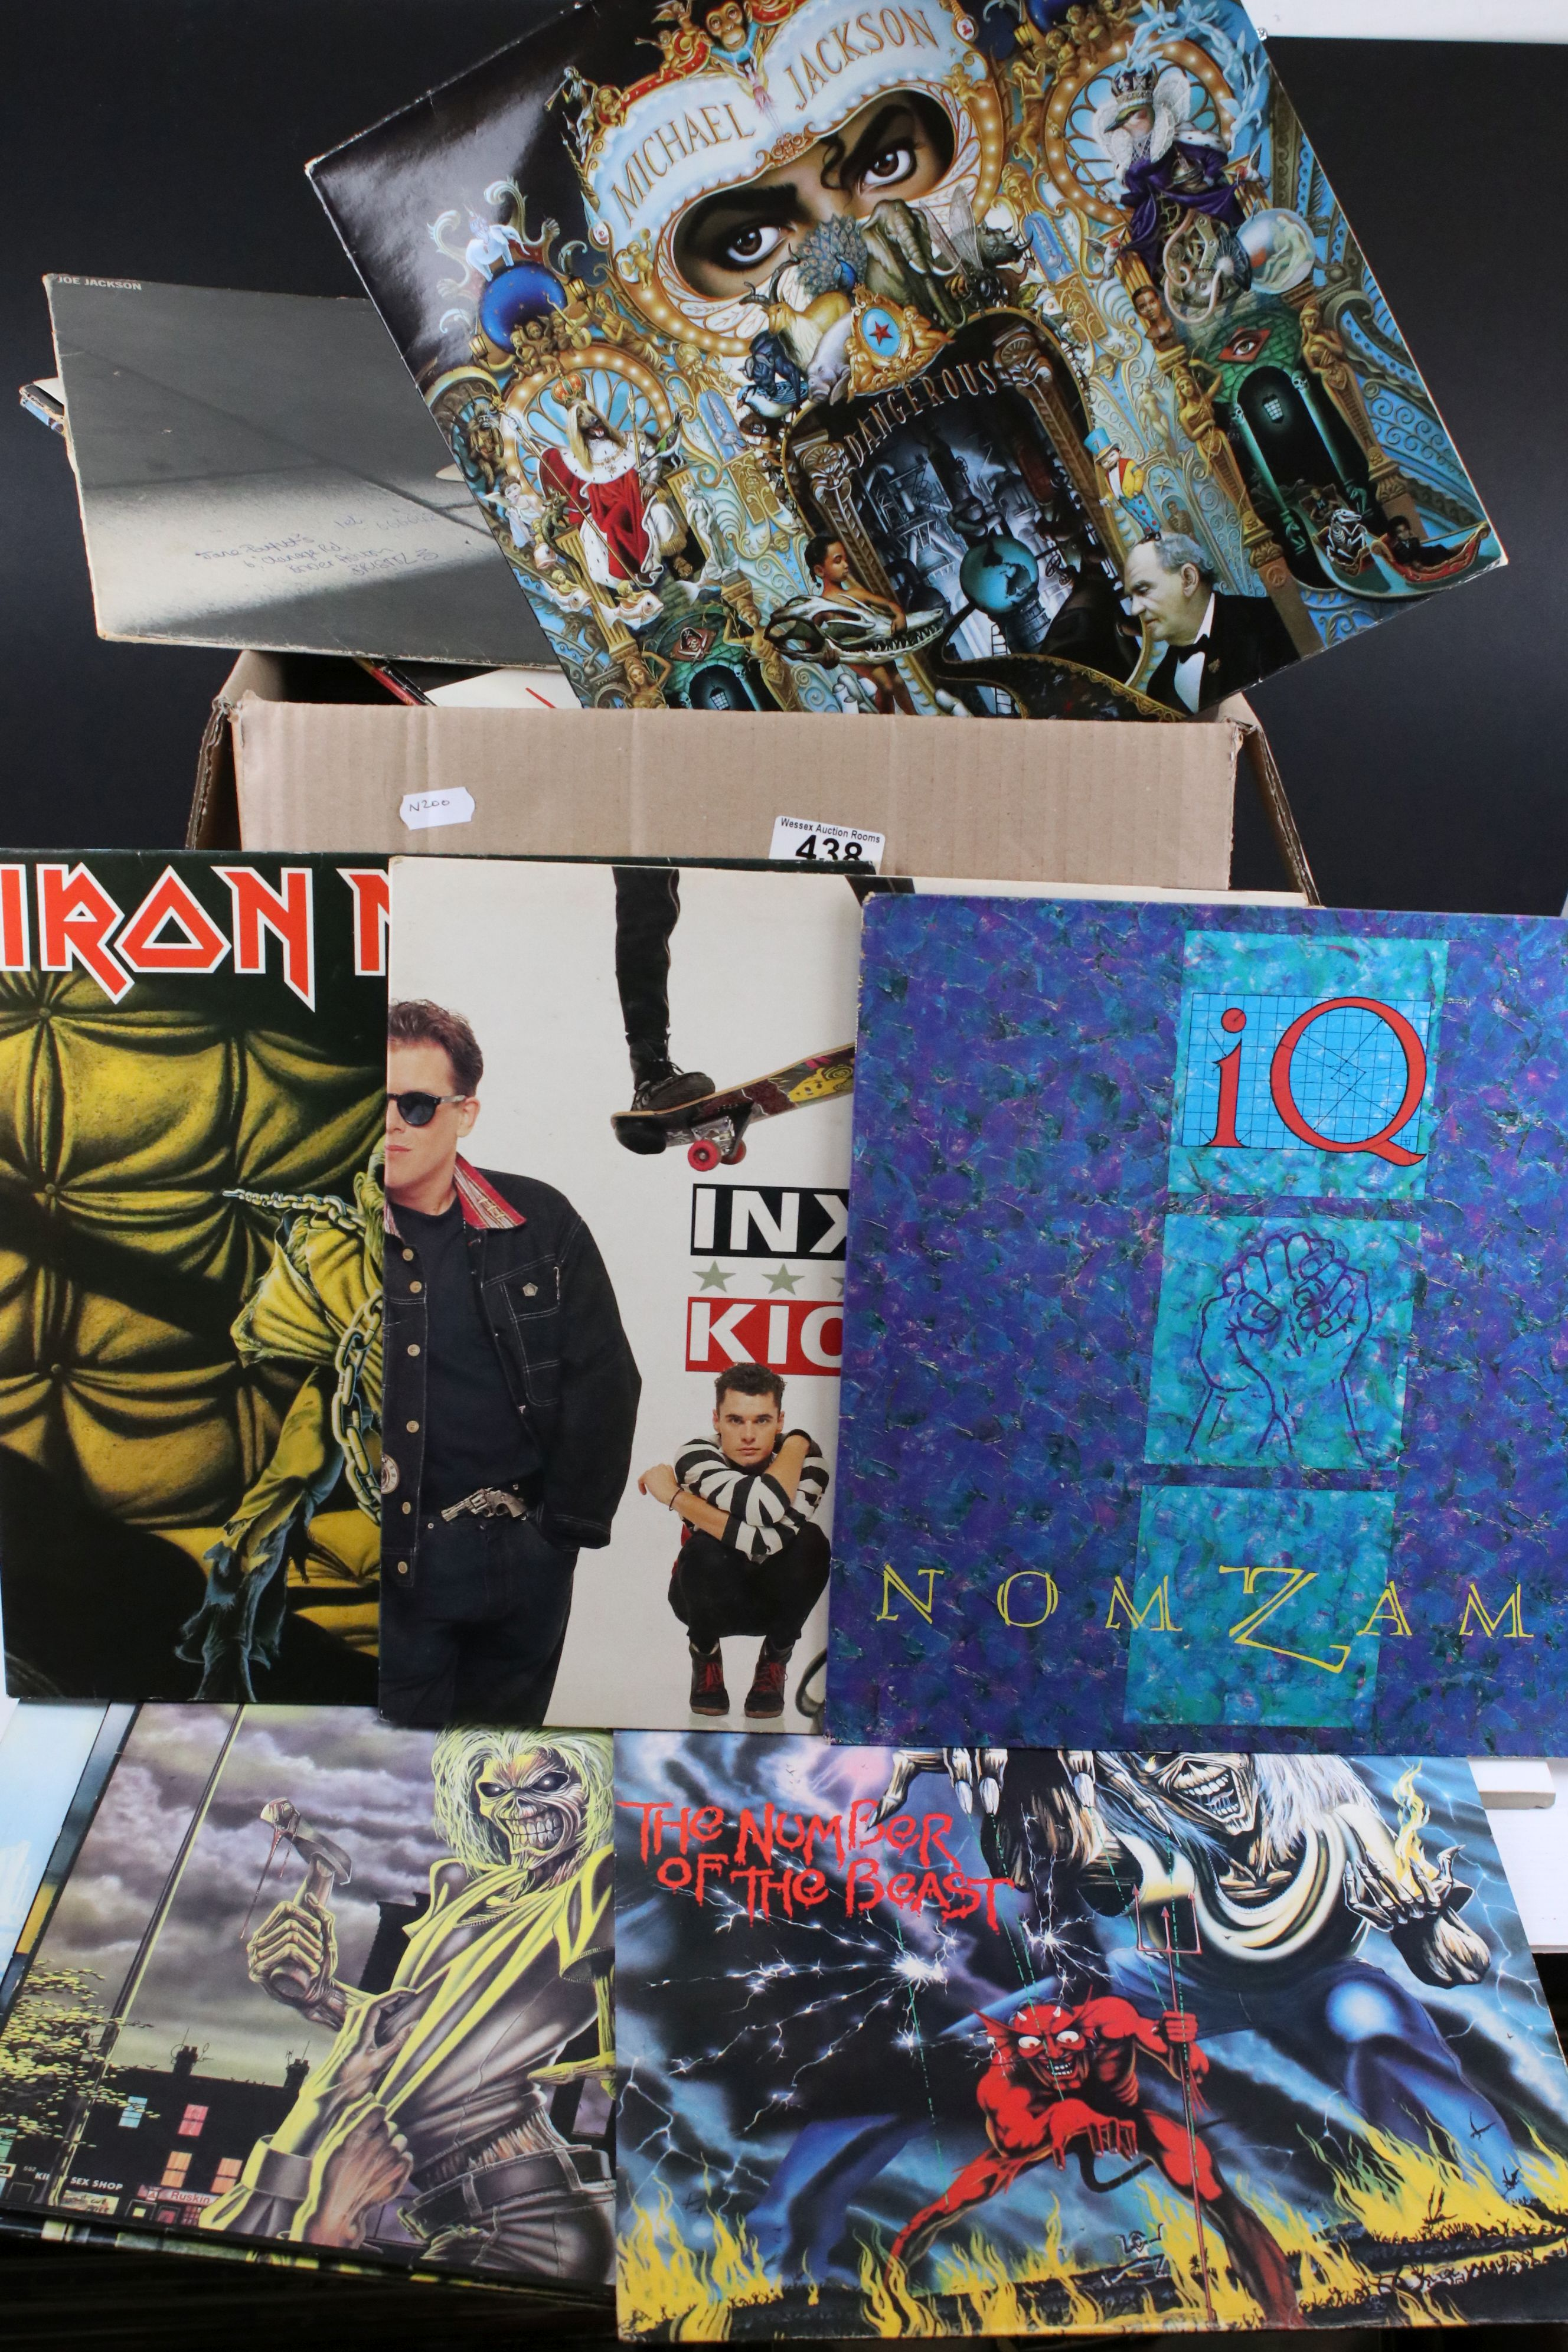 Vinyl - Approx 50 vinyl LP's spanning the decades and the genres to include Iron Maiden, ELO,